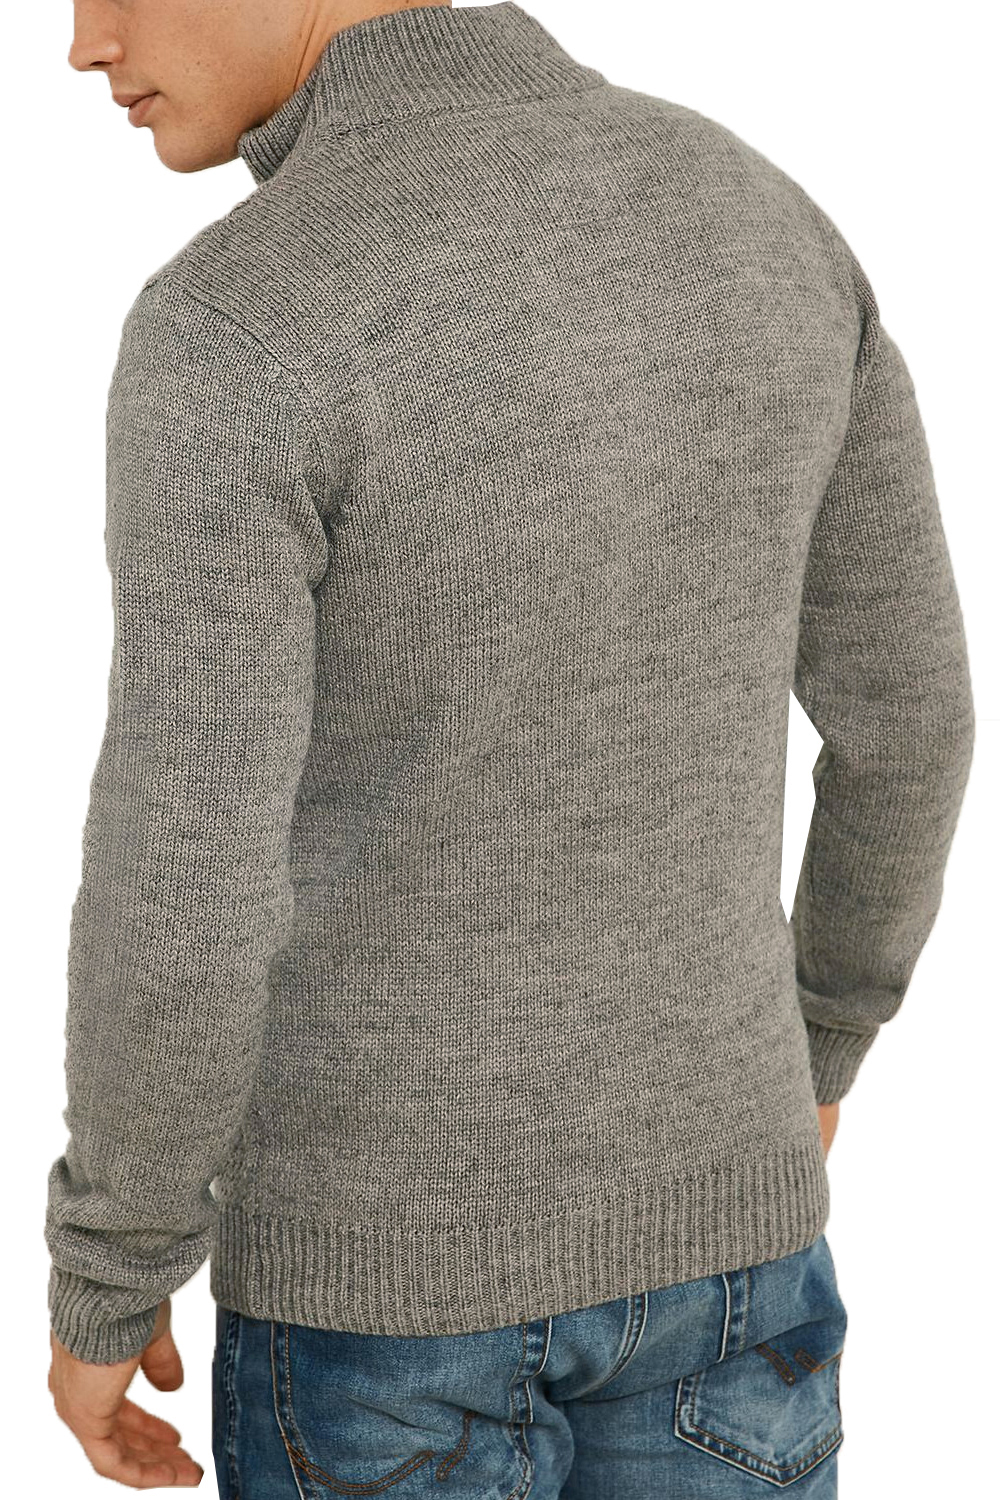 Threadbare-Wray-Mens-Top-Cable-Knited-Designer-Luxurious-Wool-Mix-Raglan-Jumpers thumbnail 23